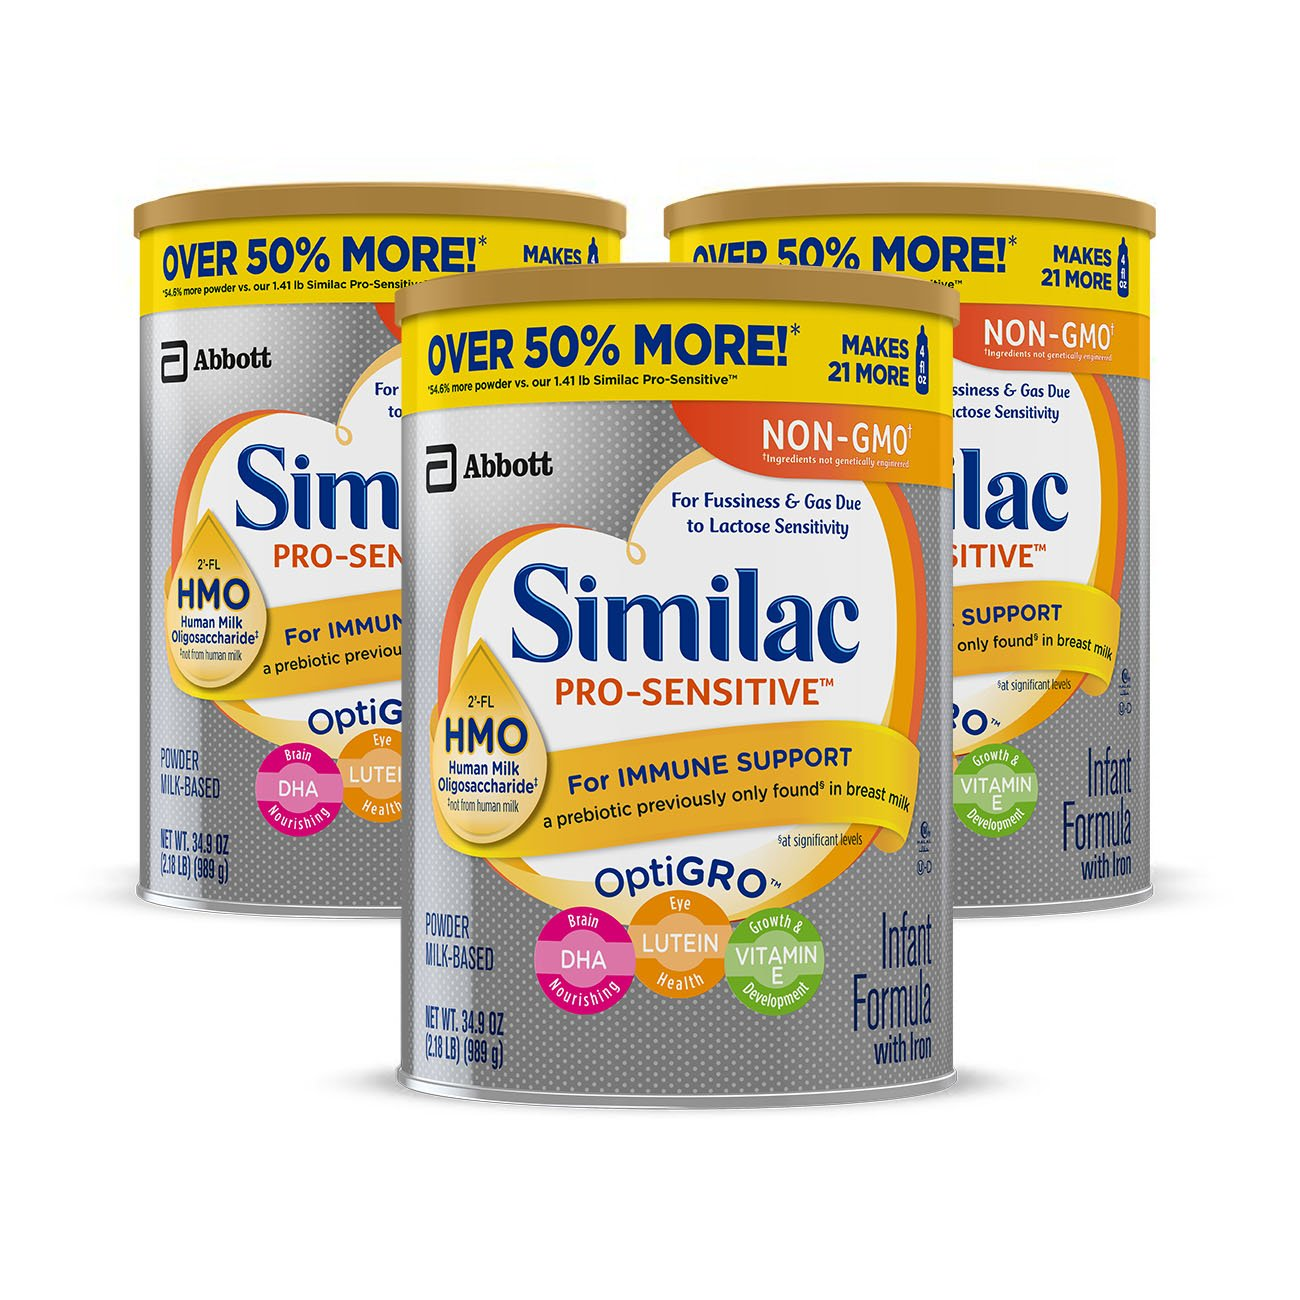 Similac Pro-Sensitive Non-GMO Infant Formula with Iron, with 2'-FL HMO, for Immune Support, Baby Formula, Powder, 34.9 oz, 3 Count (One-Month Supply) with 2'-FL HMO ABBN7 - pallet ordering 070074668369